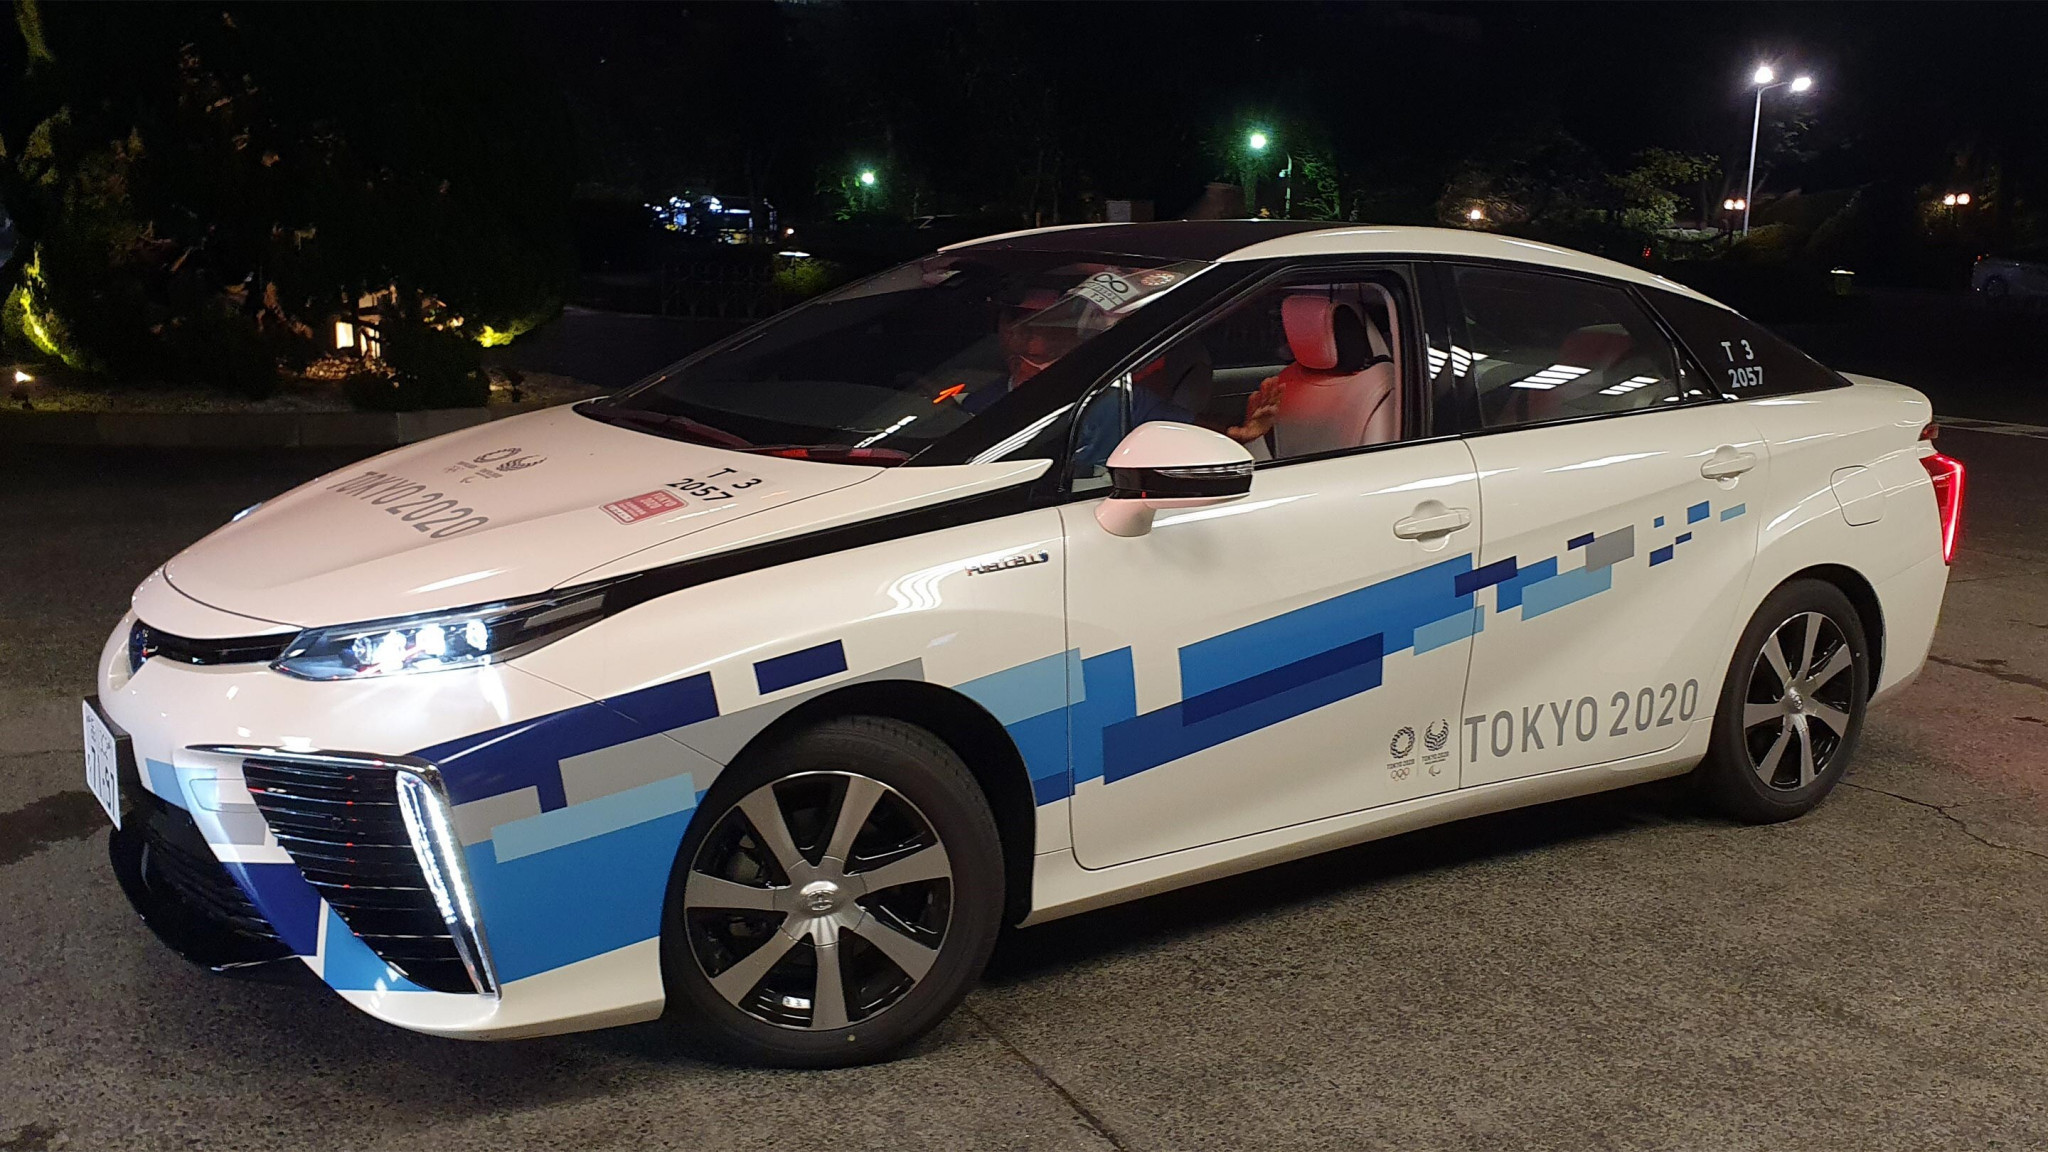 Toyota is supplying approximately 500 Mirai fuel cell vehicles to the Games to help transport staff and officials ©IOC